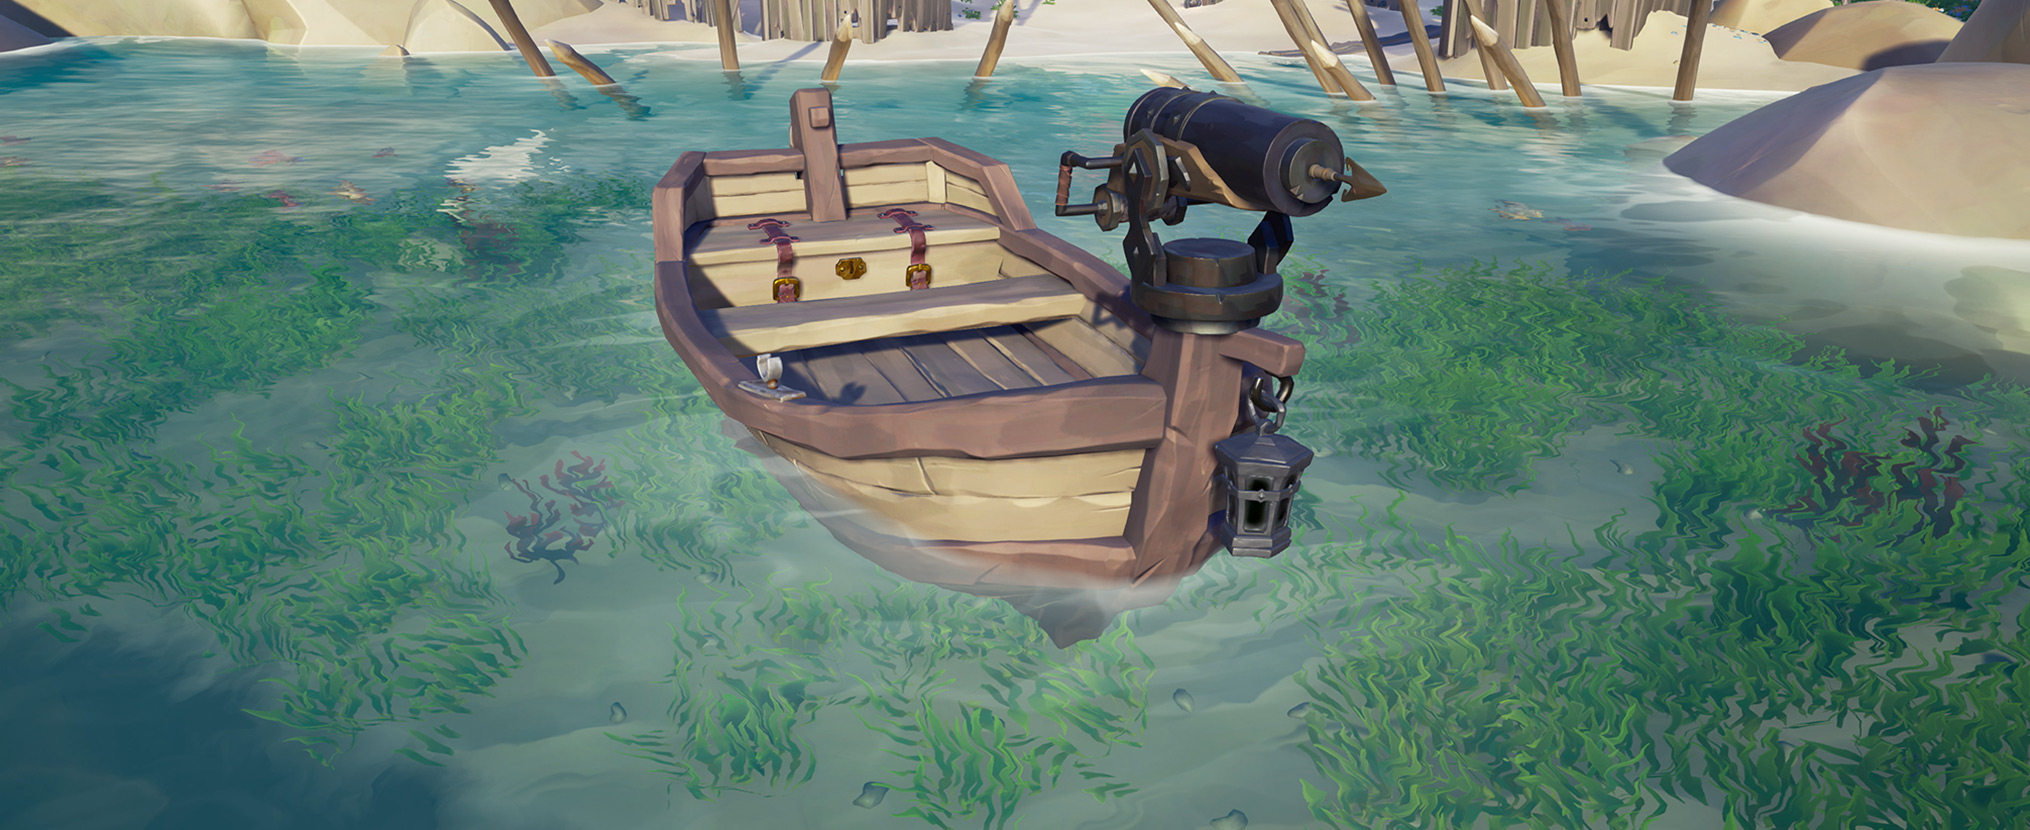 Sea of Thieves - Release Notes